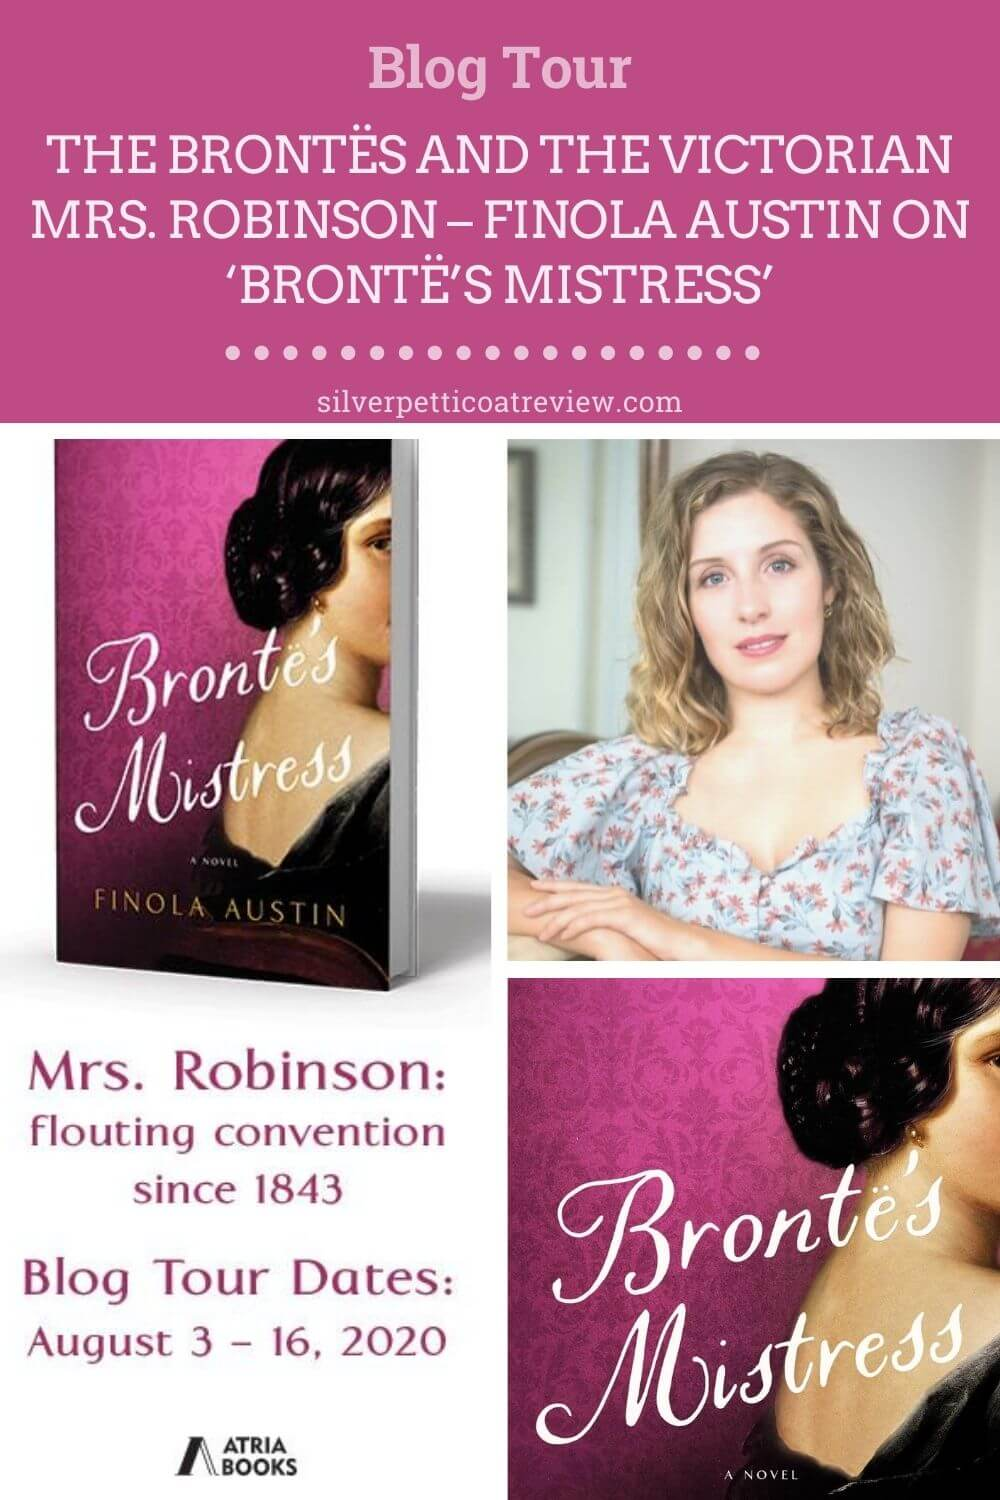 The Brontës and the Victorian Mrs. Robinson – Finola Austin On 'Brontë's Mistress' (Pinterest image)